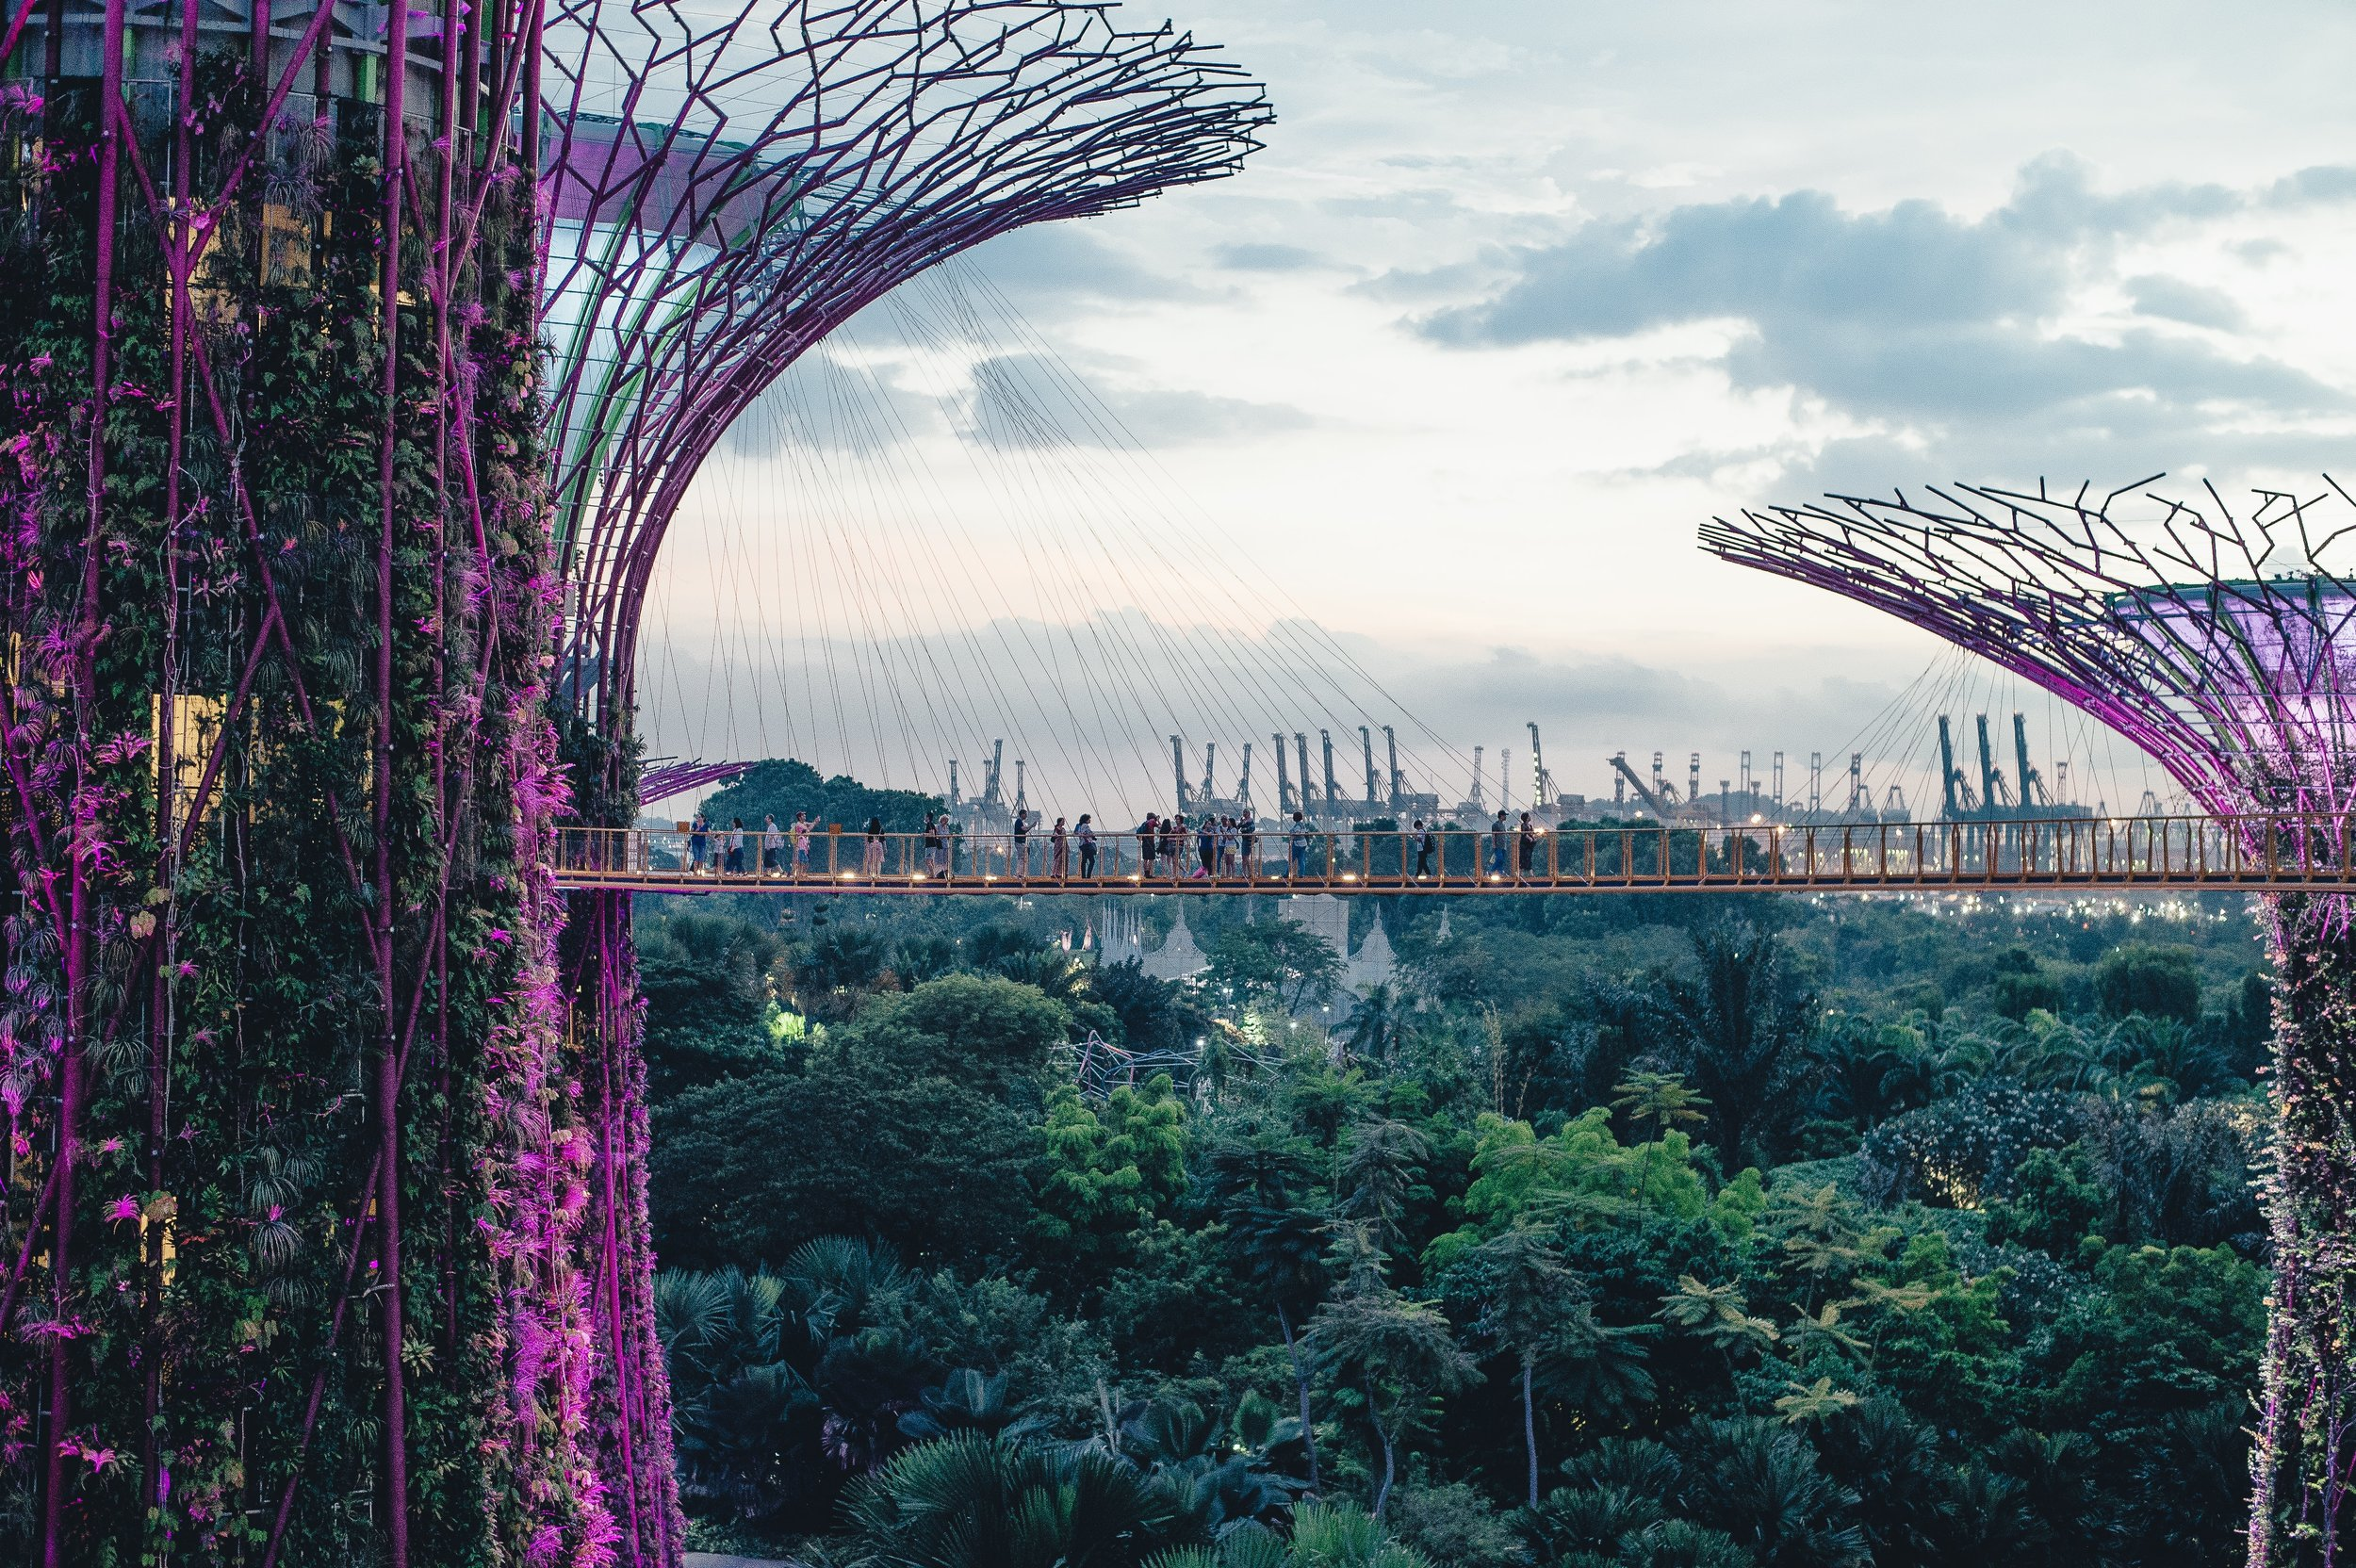 Singapore's tech scene is really blooming. Photo credit: Annie Spratt